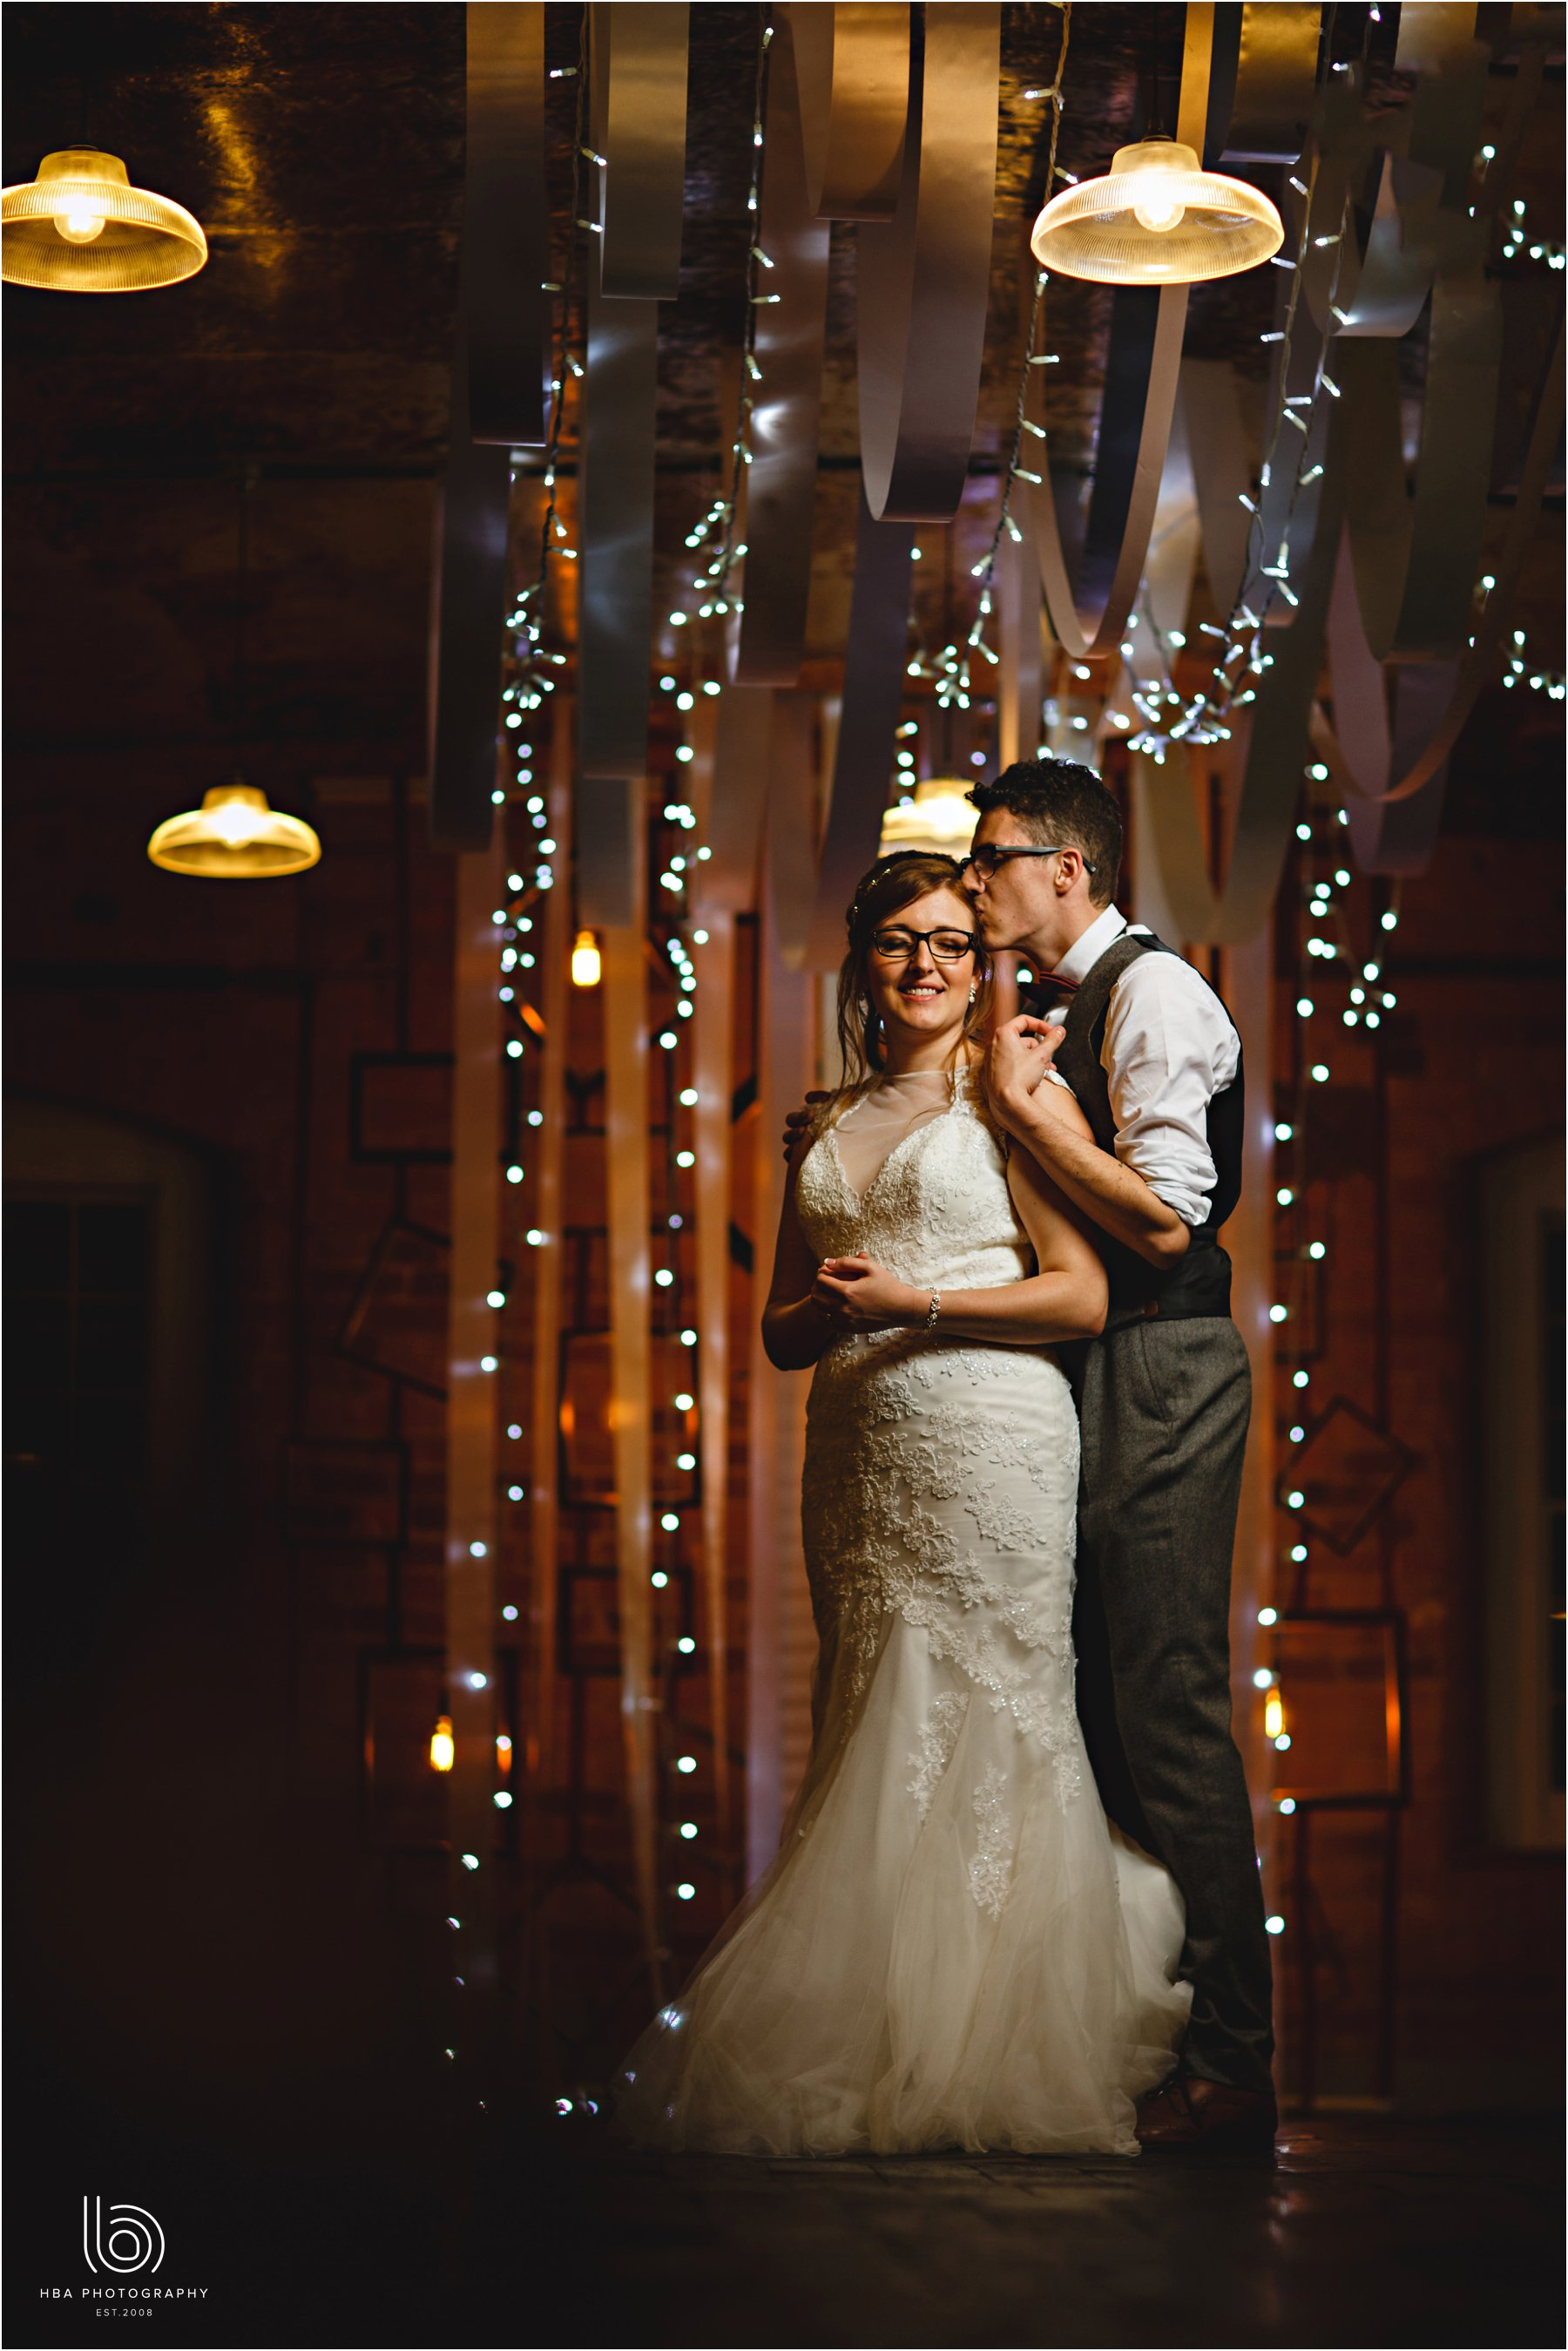 the bride and groom twinkly lights